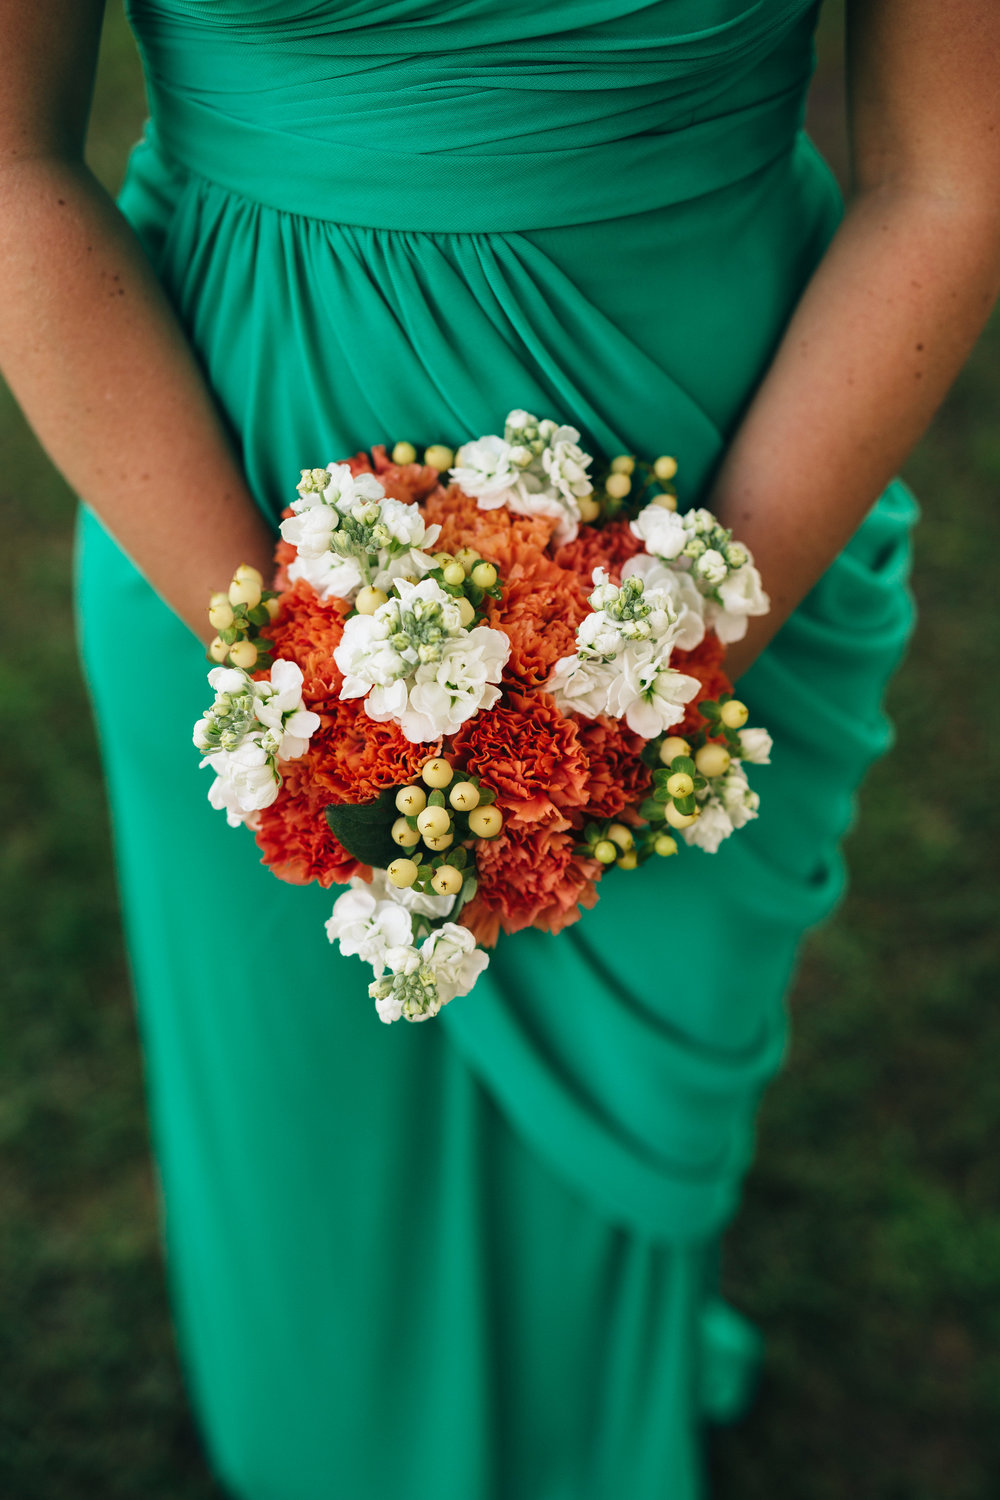 Bridesmaids dress and bouquet.